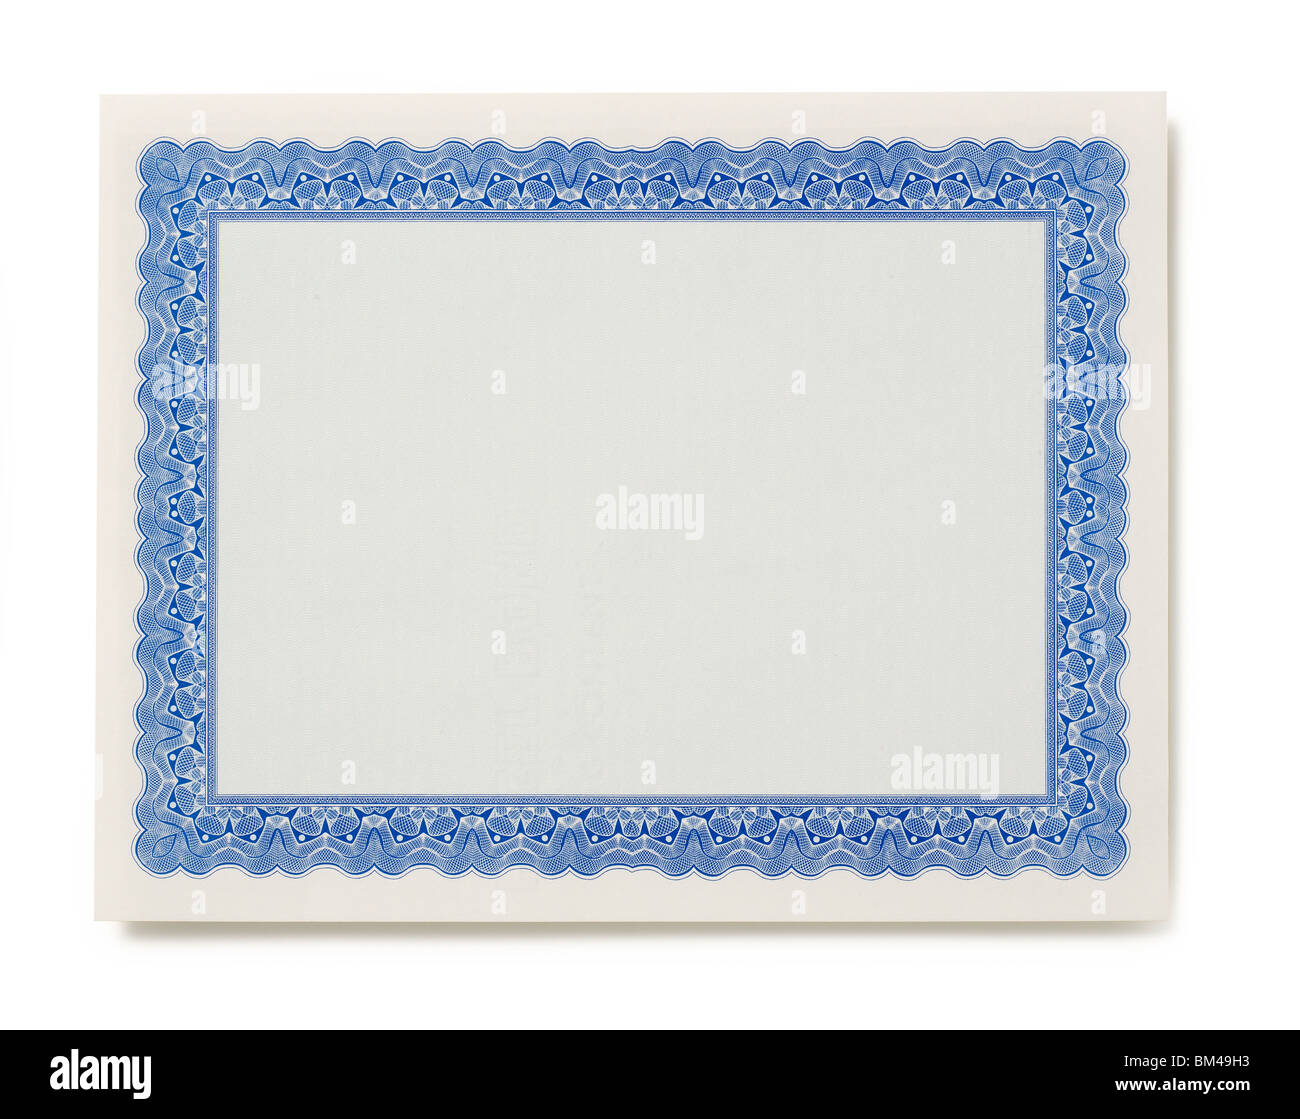 Vierge du certificat Photo Stock